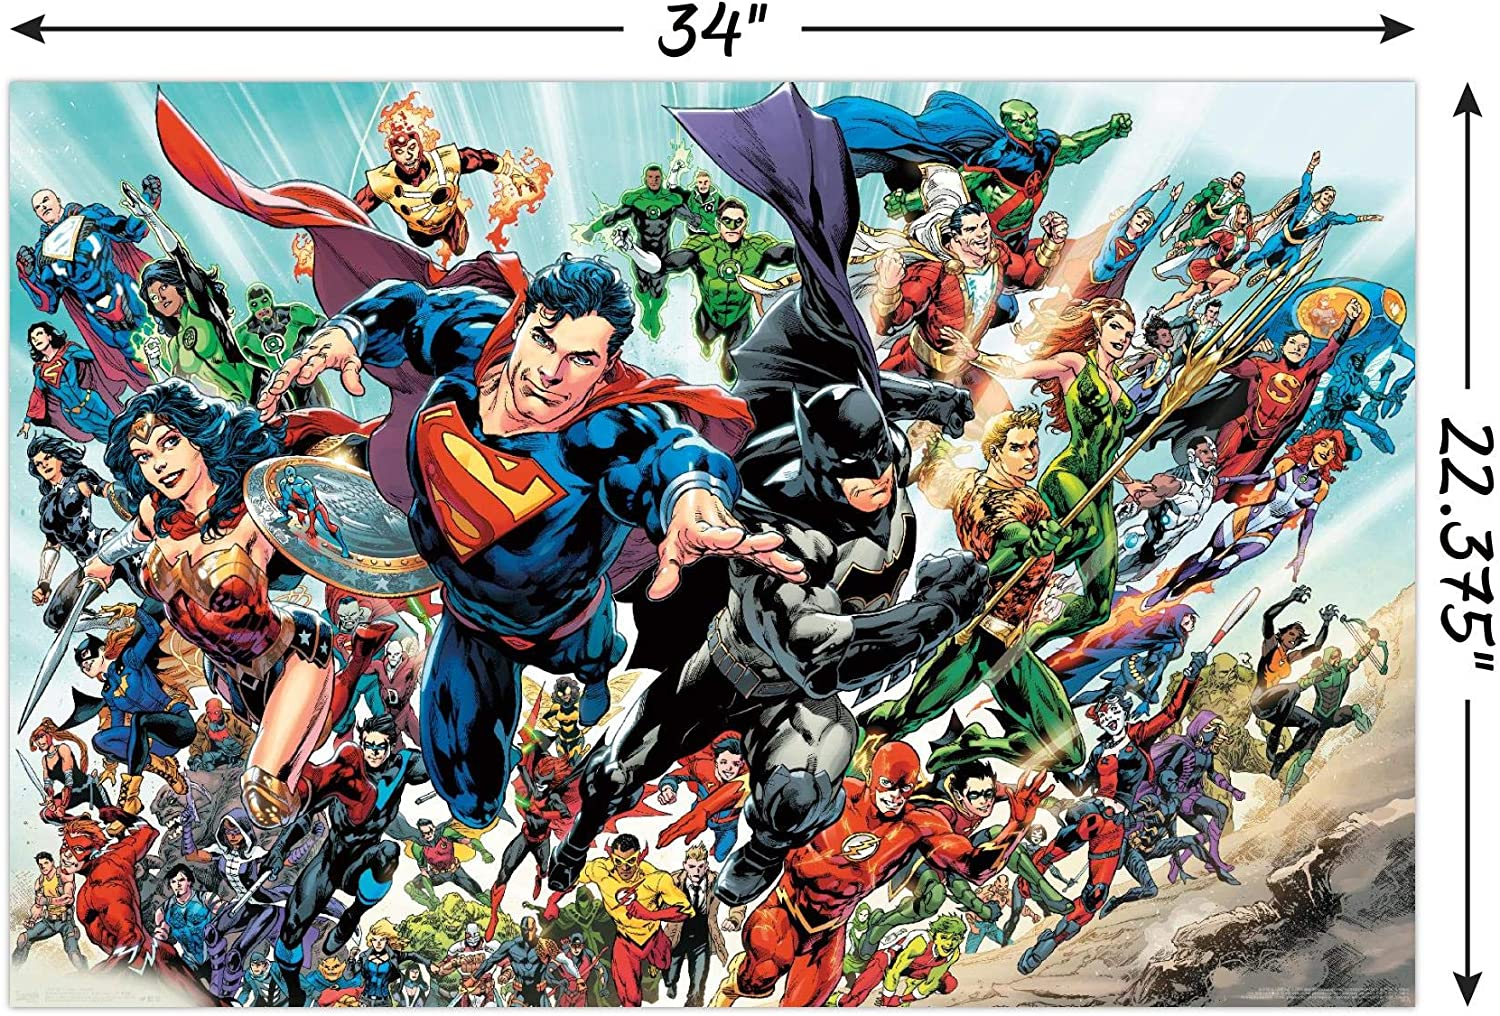 Trends International Dc Comics Justice League Rebirth Group Wall Poster 22 375 X 34 Unframed Version Home Kitchen